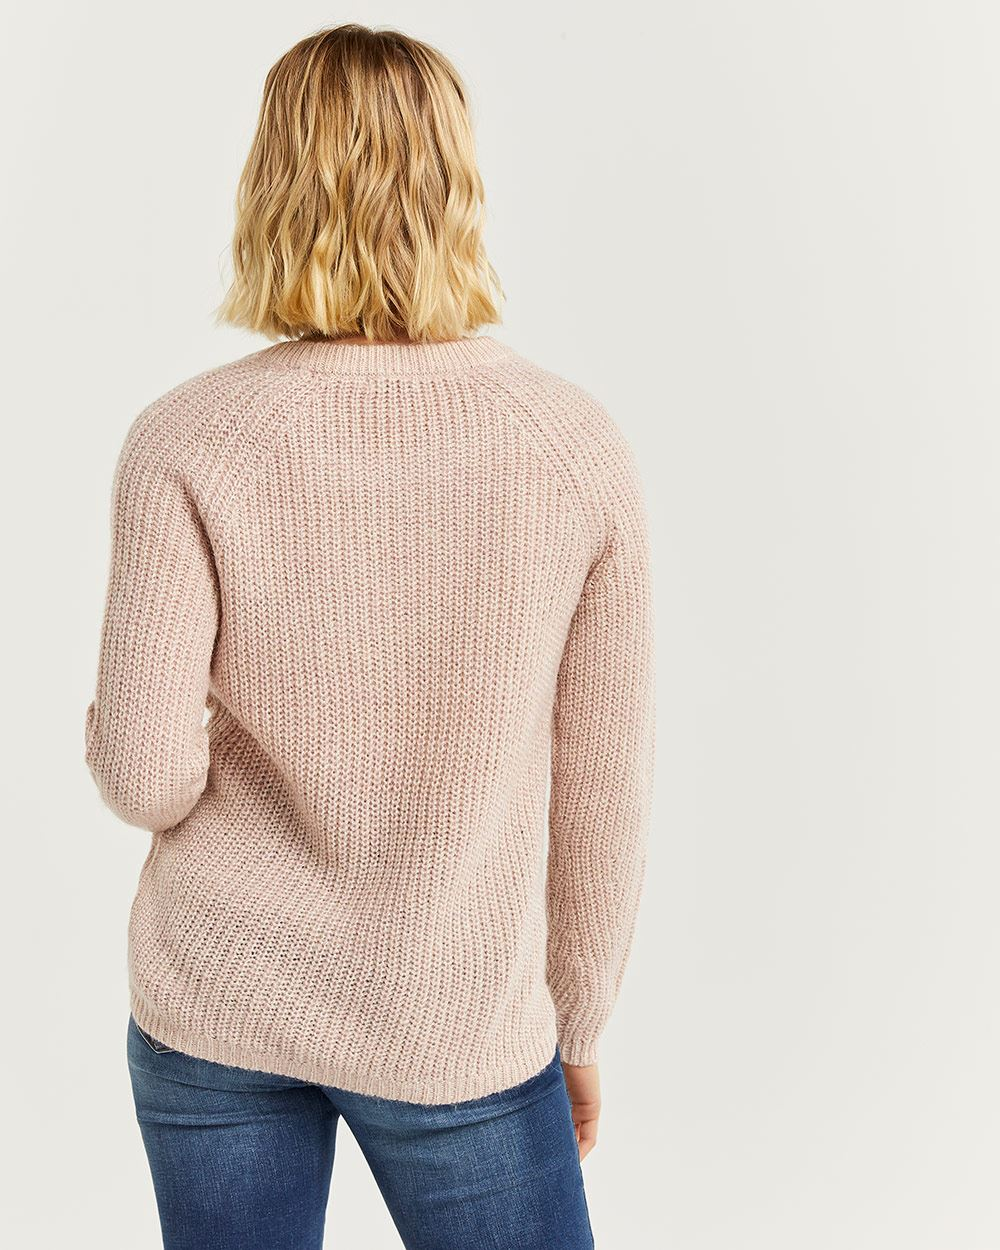 Wavy Stitch Crew Neck Sweater